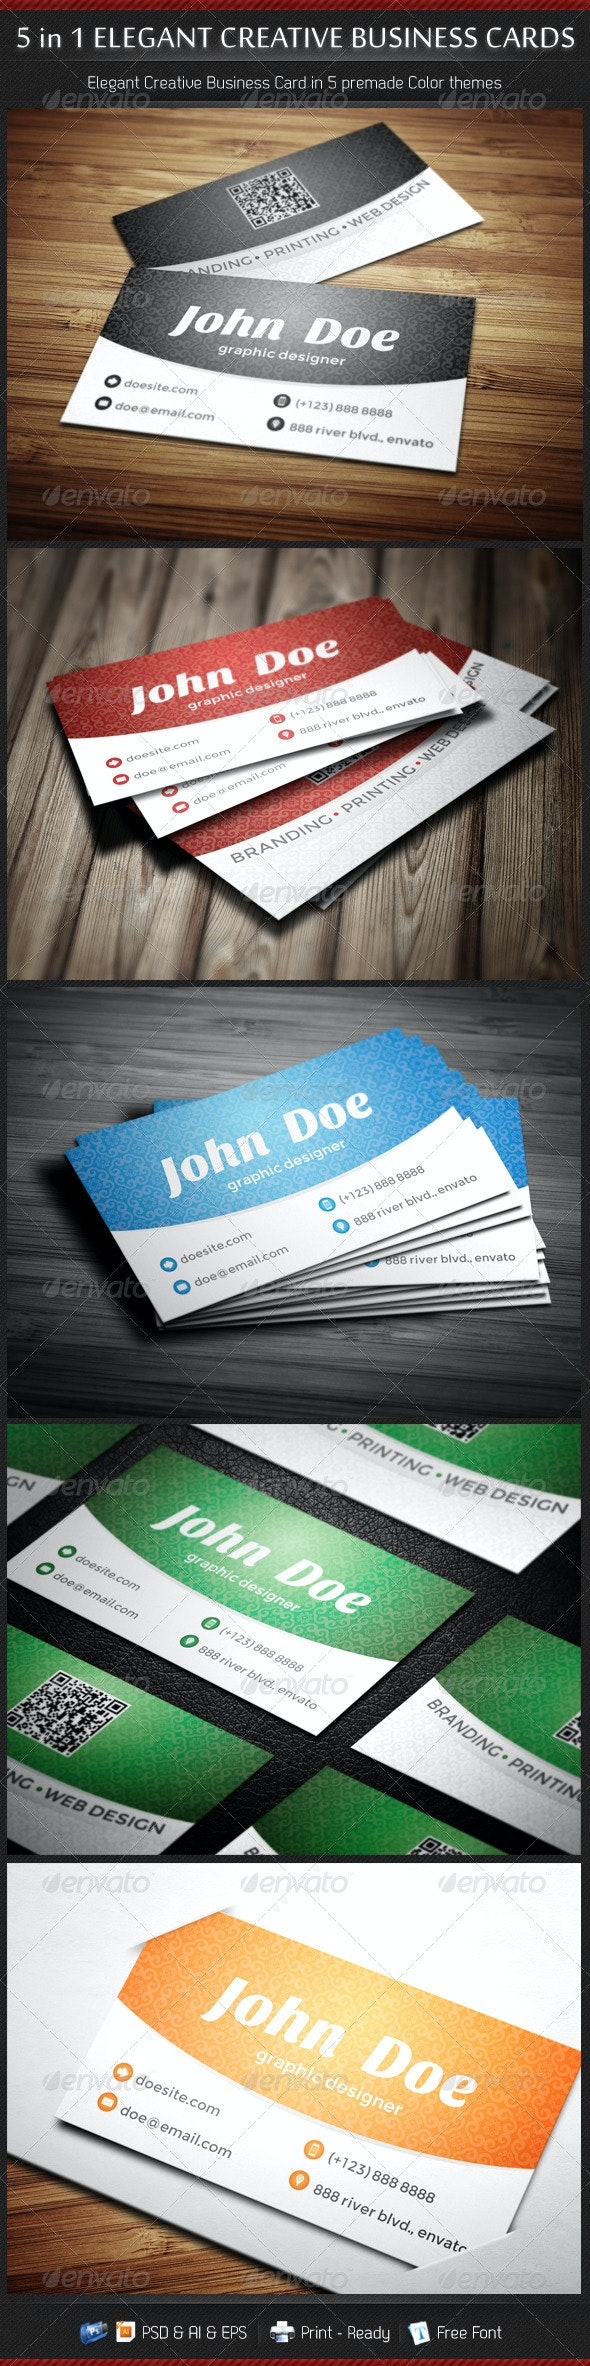 5 in 1 Creative Elegant Business Card Template - Creative Business Cards